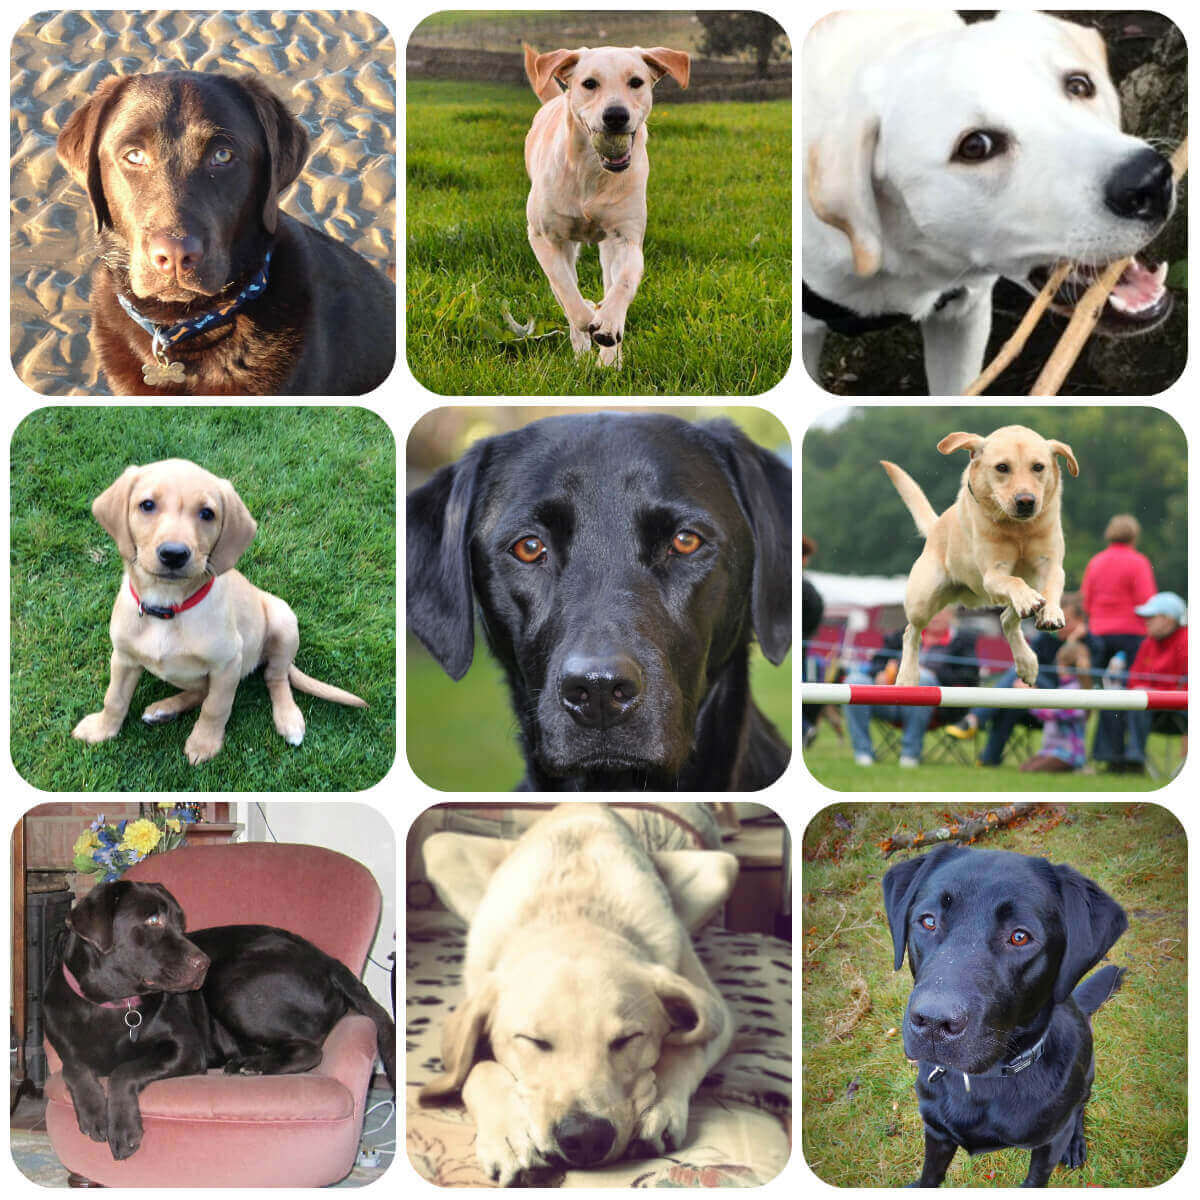 Labrador collage, part of BorrowMyDoggy's guide to dog breeds